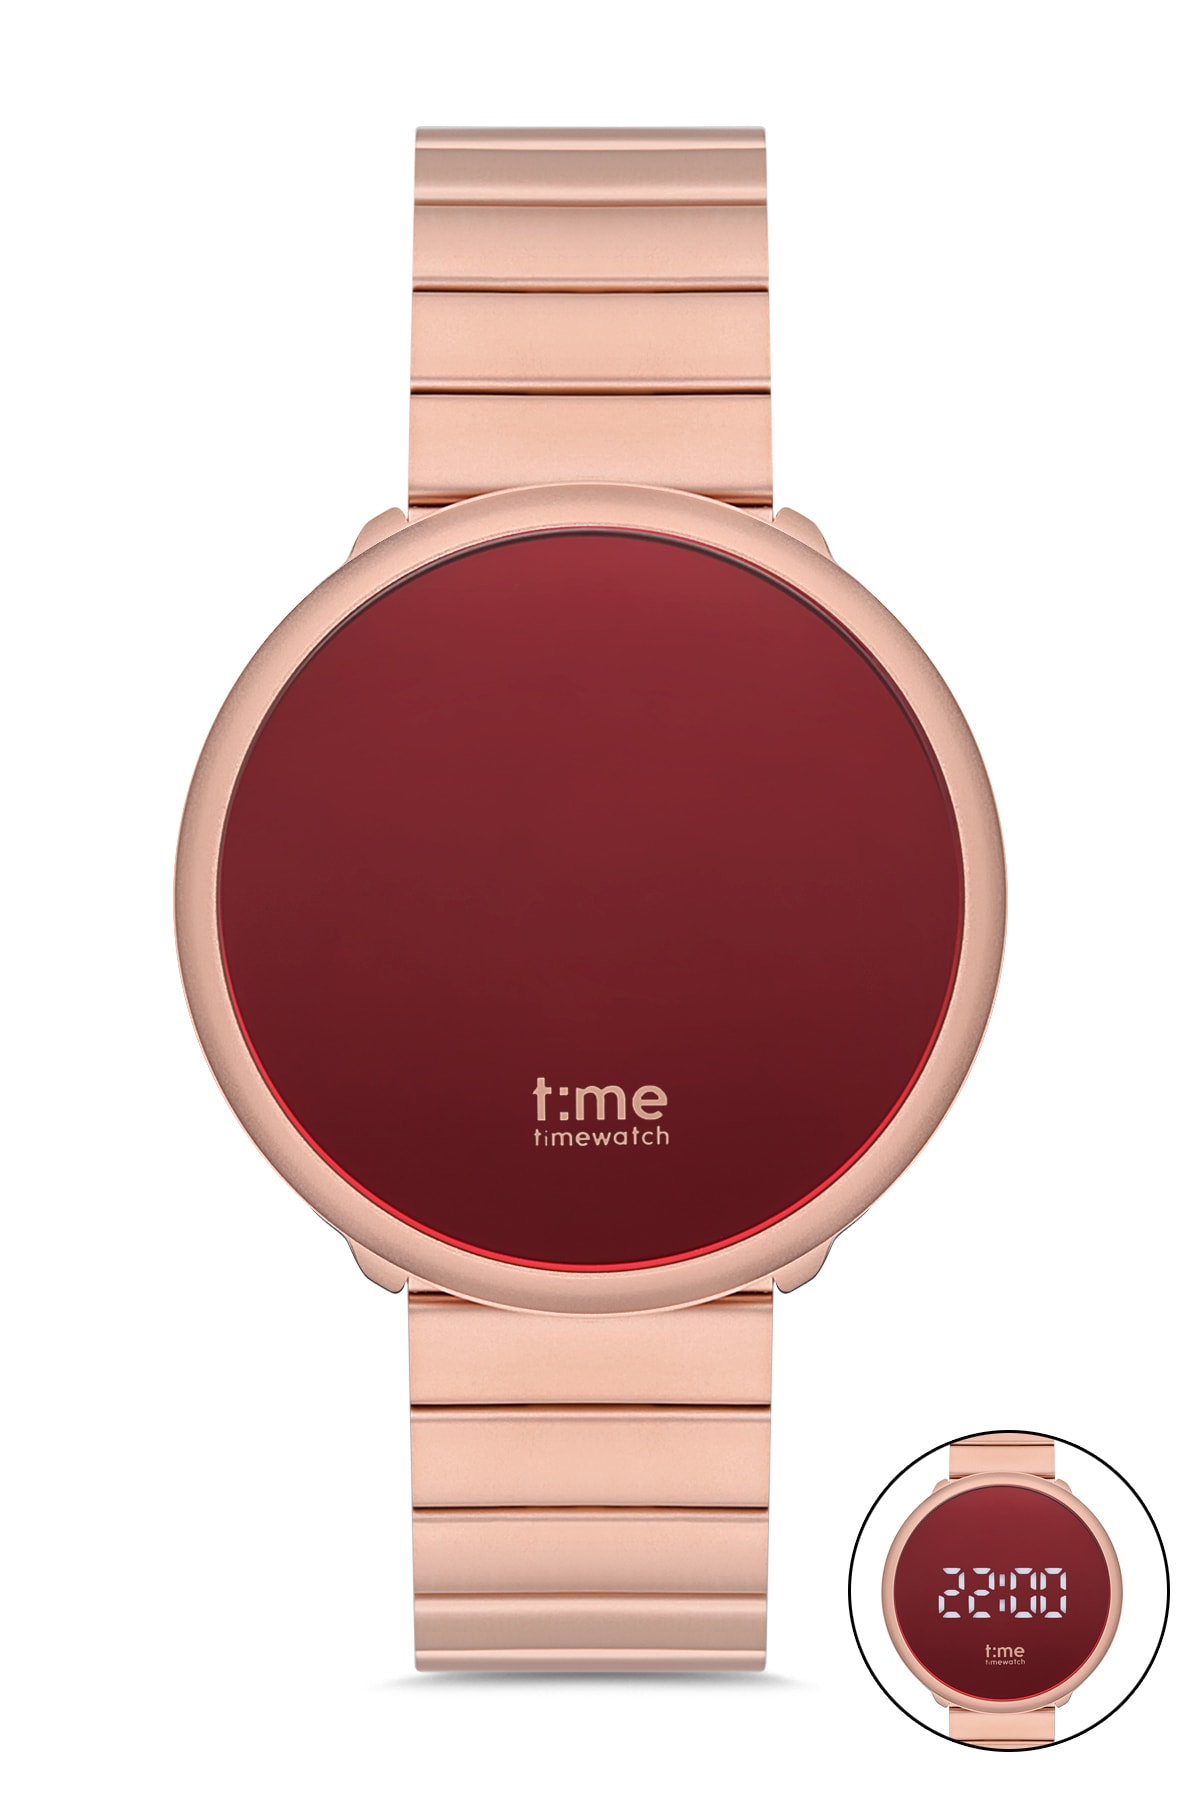 Timewatch Time Watch Tw.142.2rrr Unisex Kol Saati 1